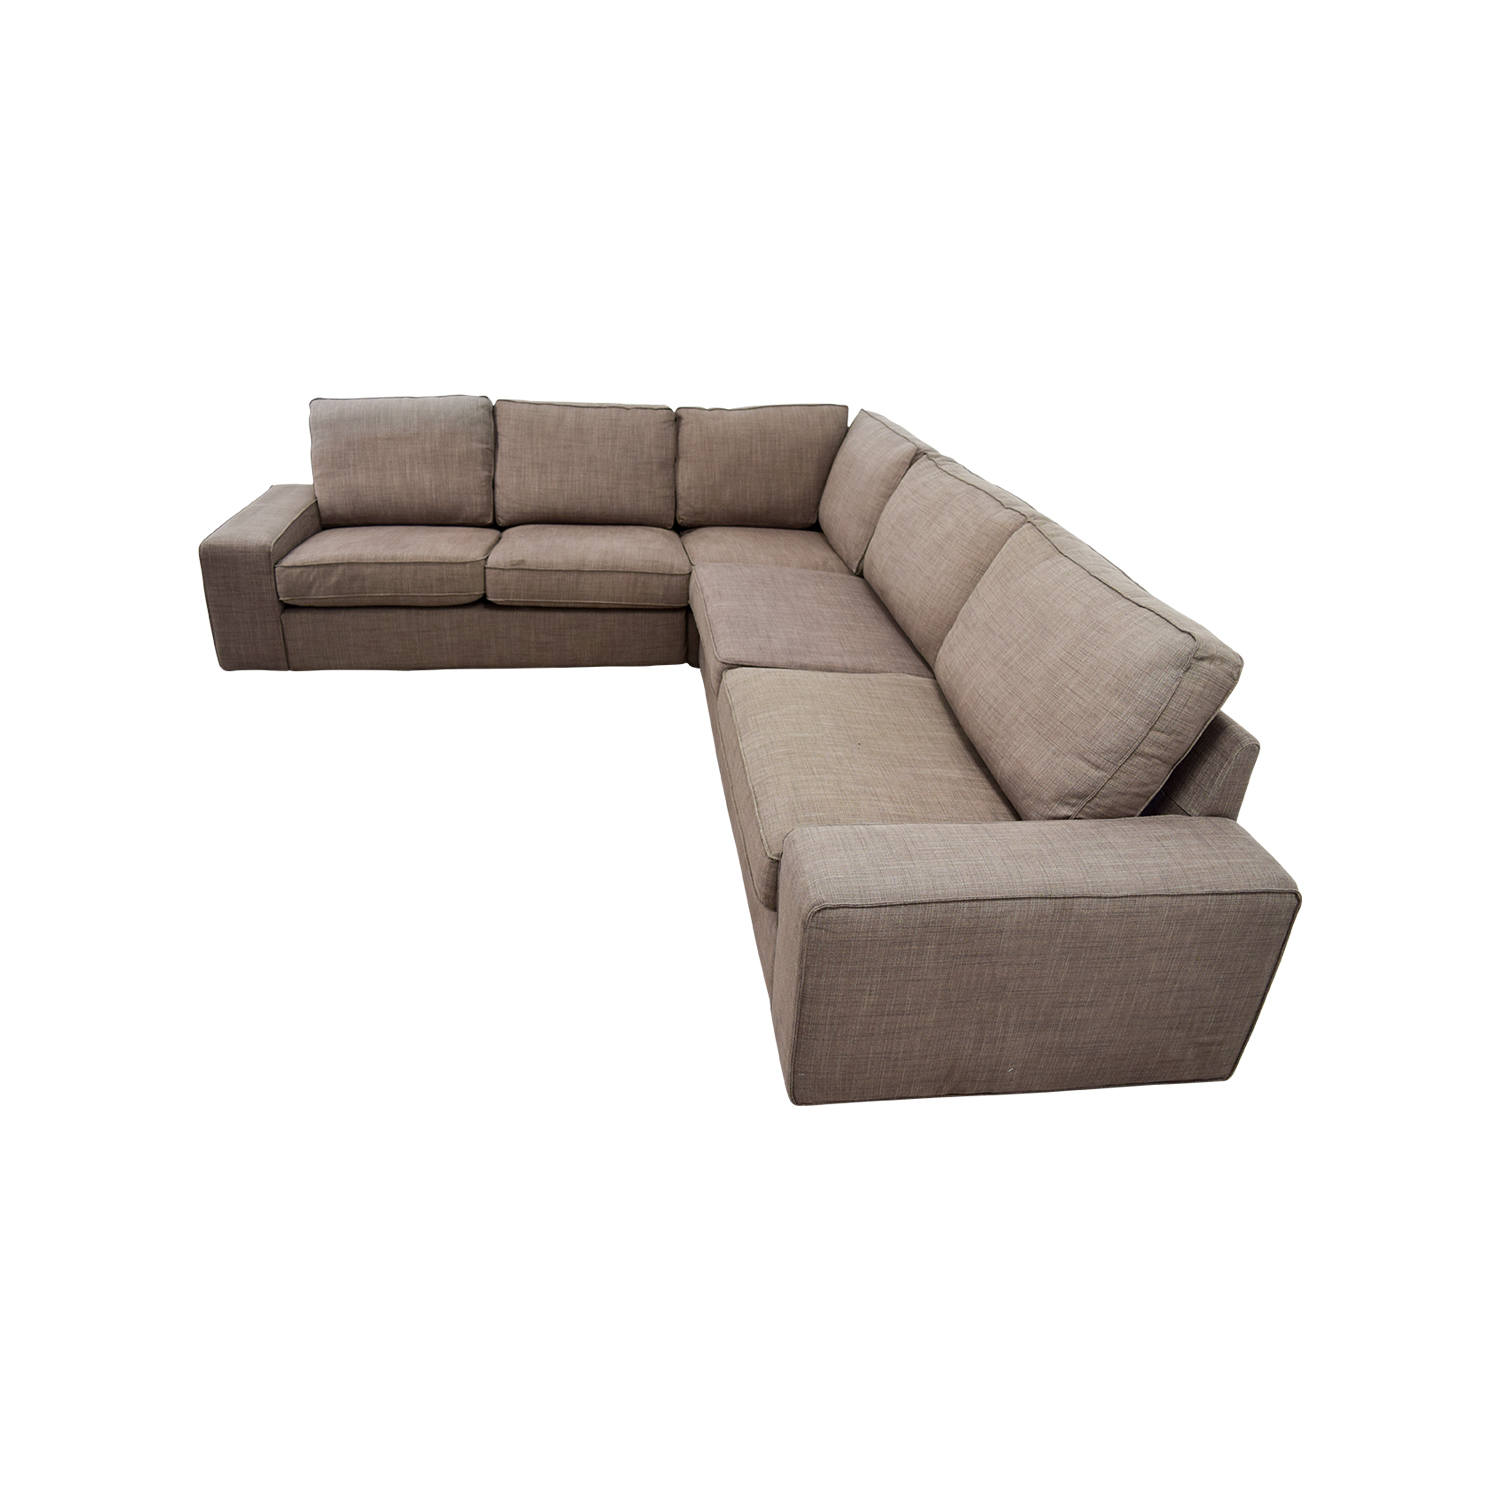 57 Off Ikea Ikea Kivik Brown Sectional Sofas